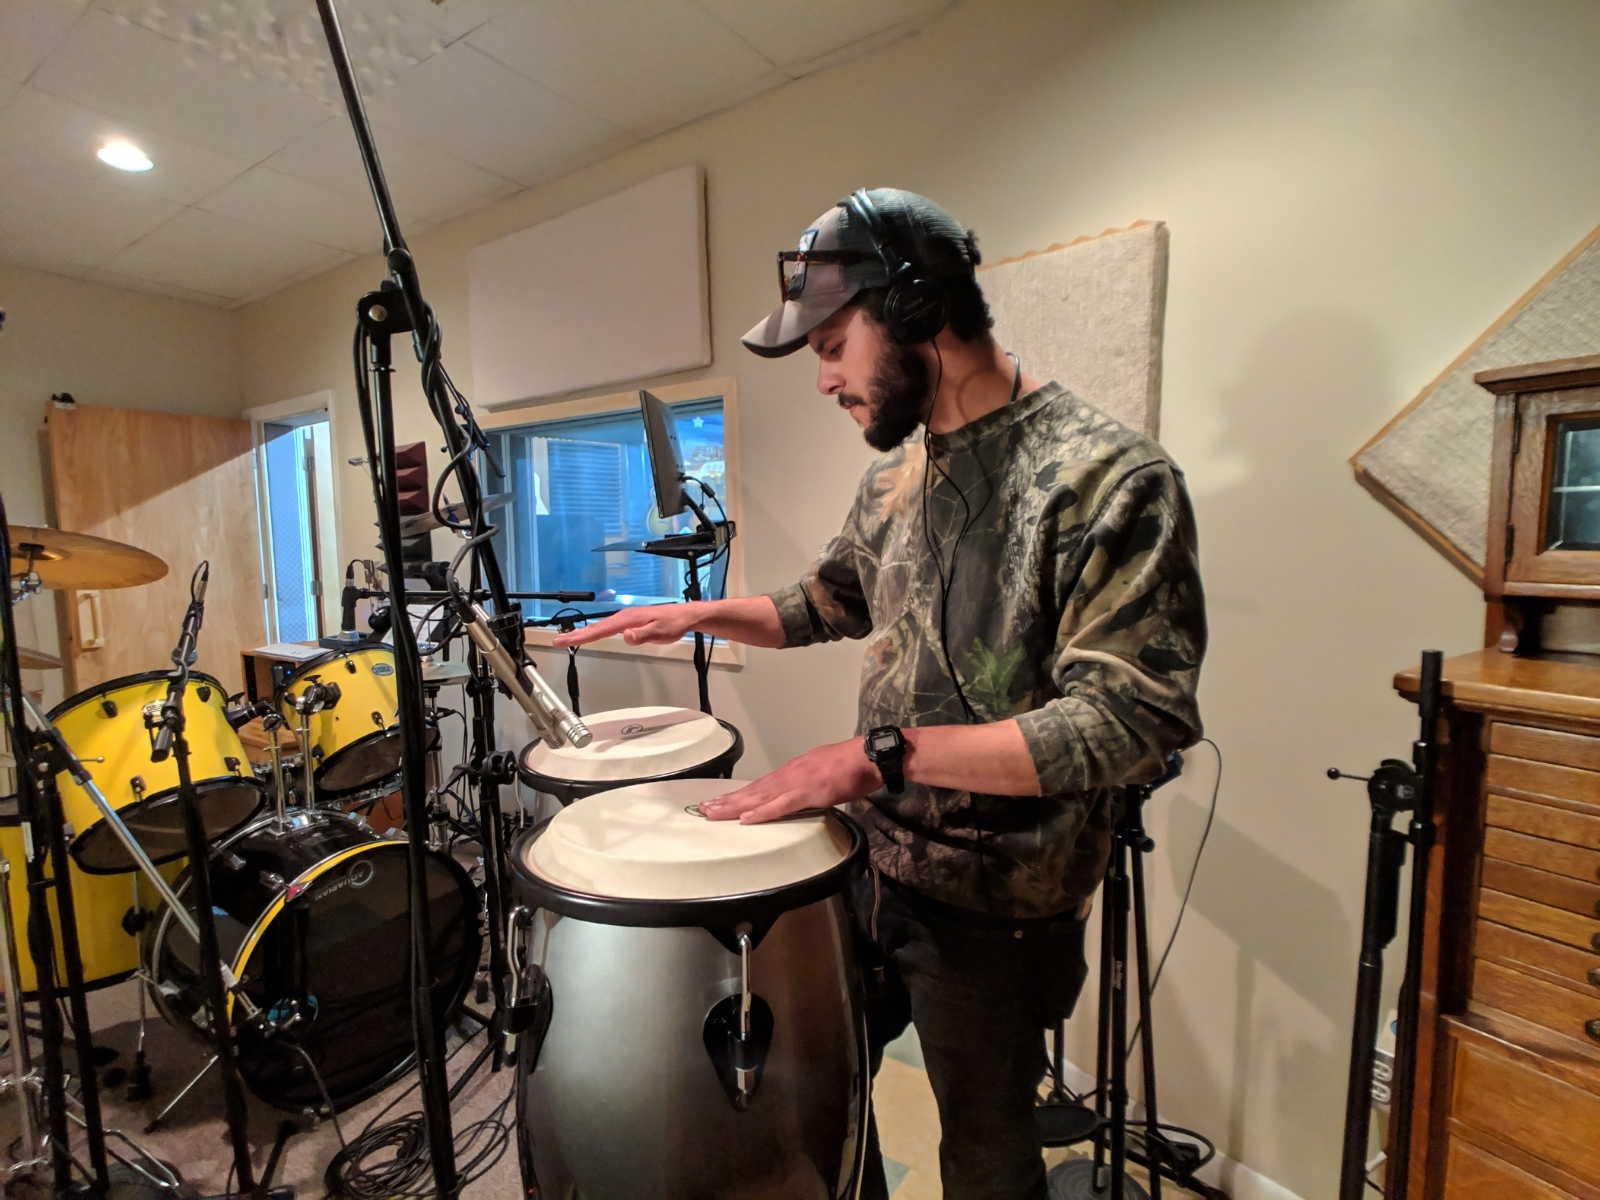 Real drums, real percussion